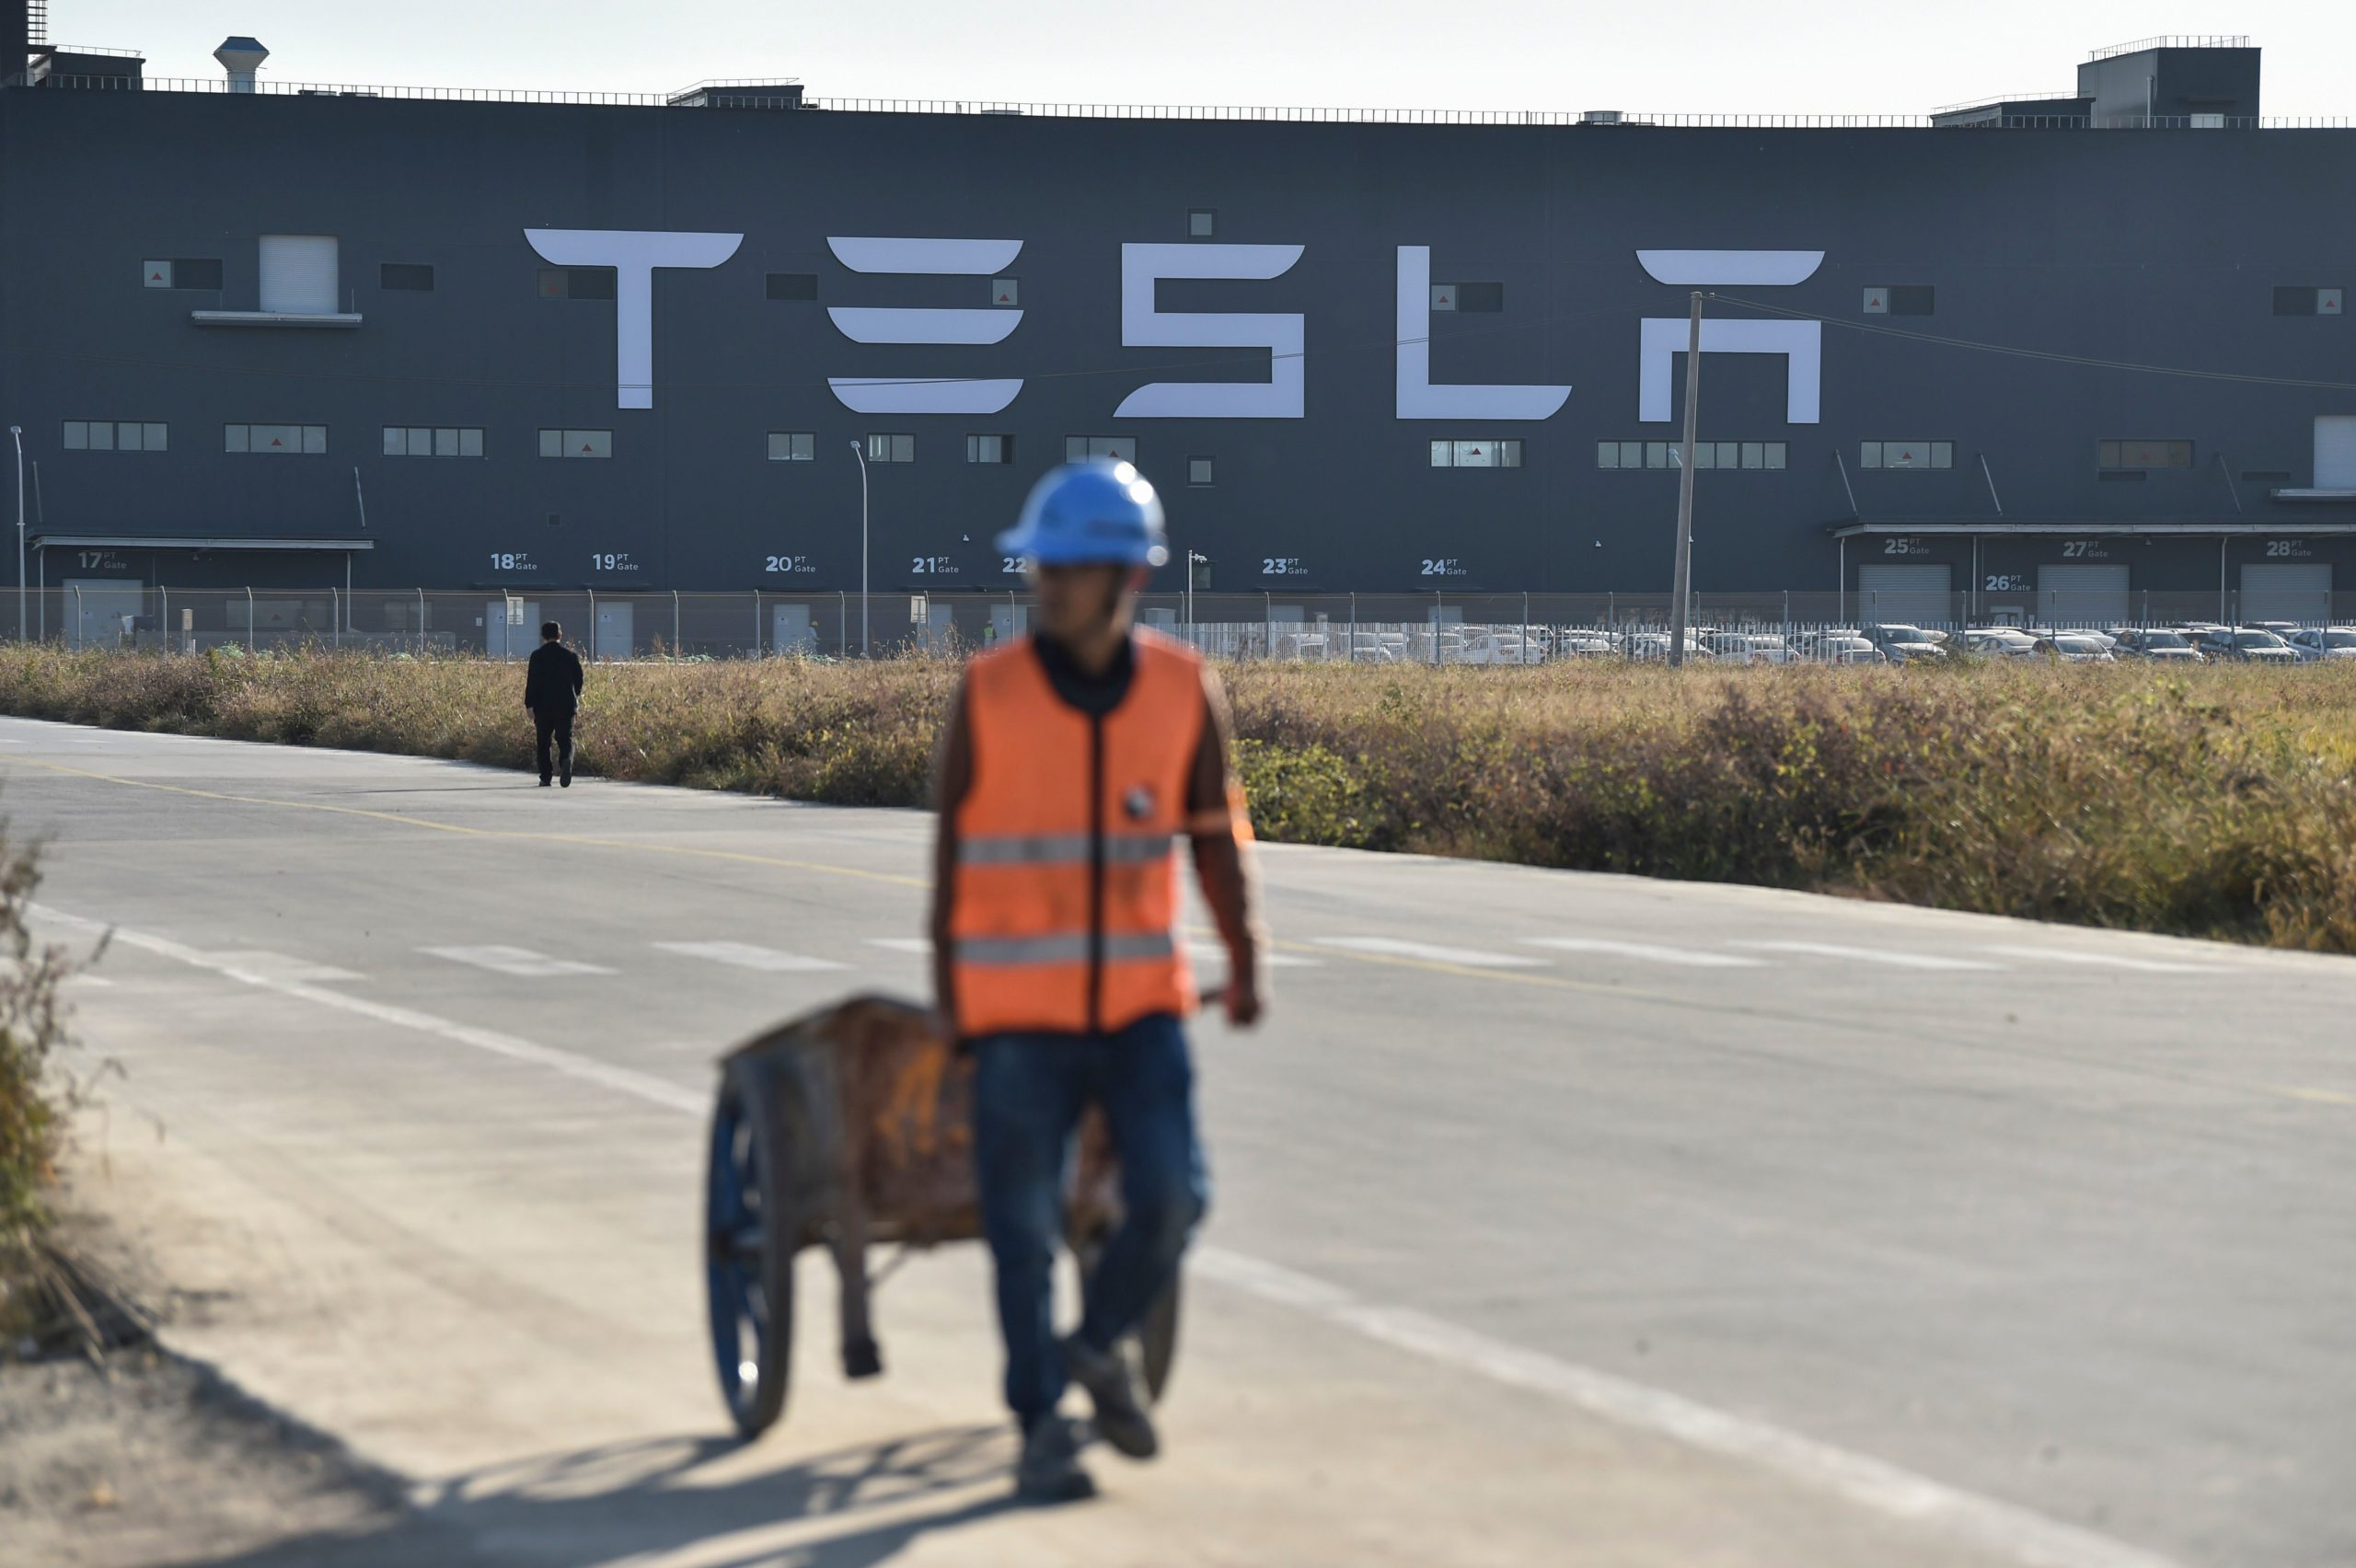 A worker walks on a road next to the new Tesla factory built in Shanghai, China on Nov. 8, 2019. (Hector Retamal/AFP via Getty Images)